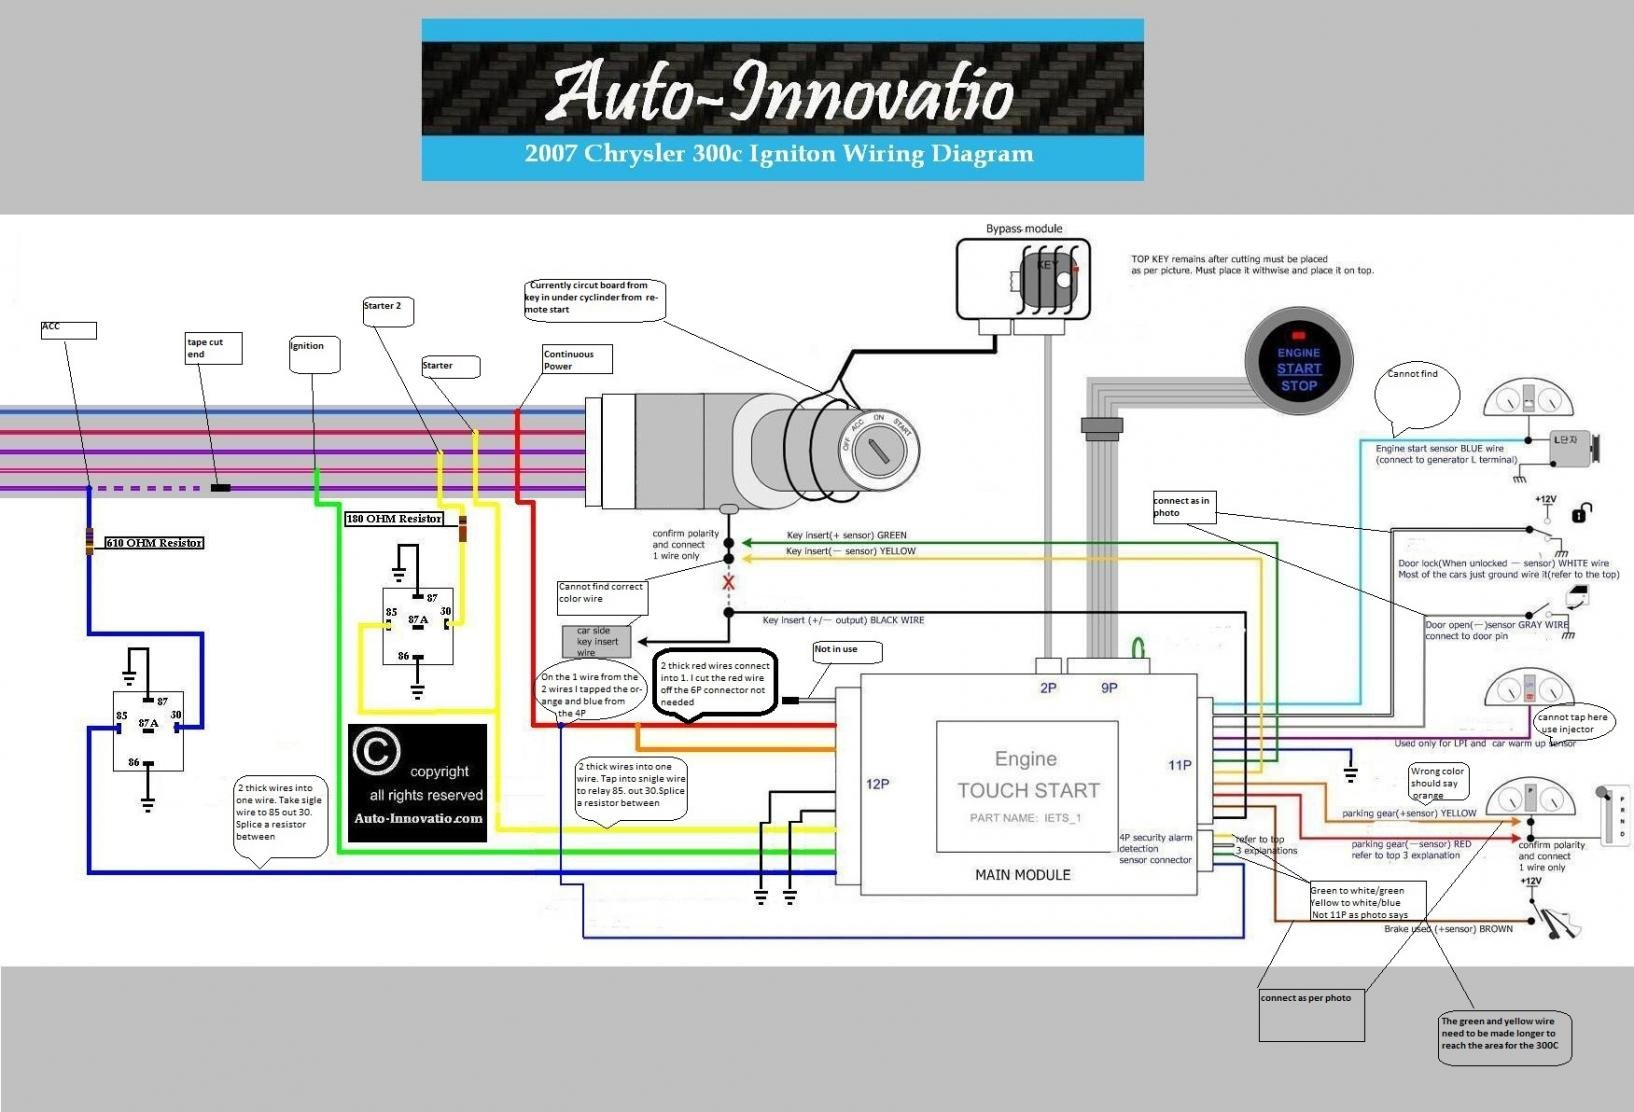 hight resolution of wiring diagram for chrysler 300 wiring diagram note wiring diagram chrysler 300m 2007 chrysler 300 wiring